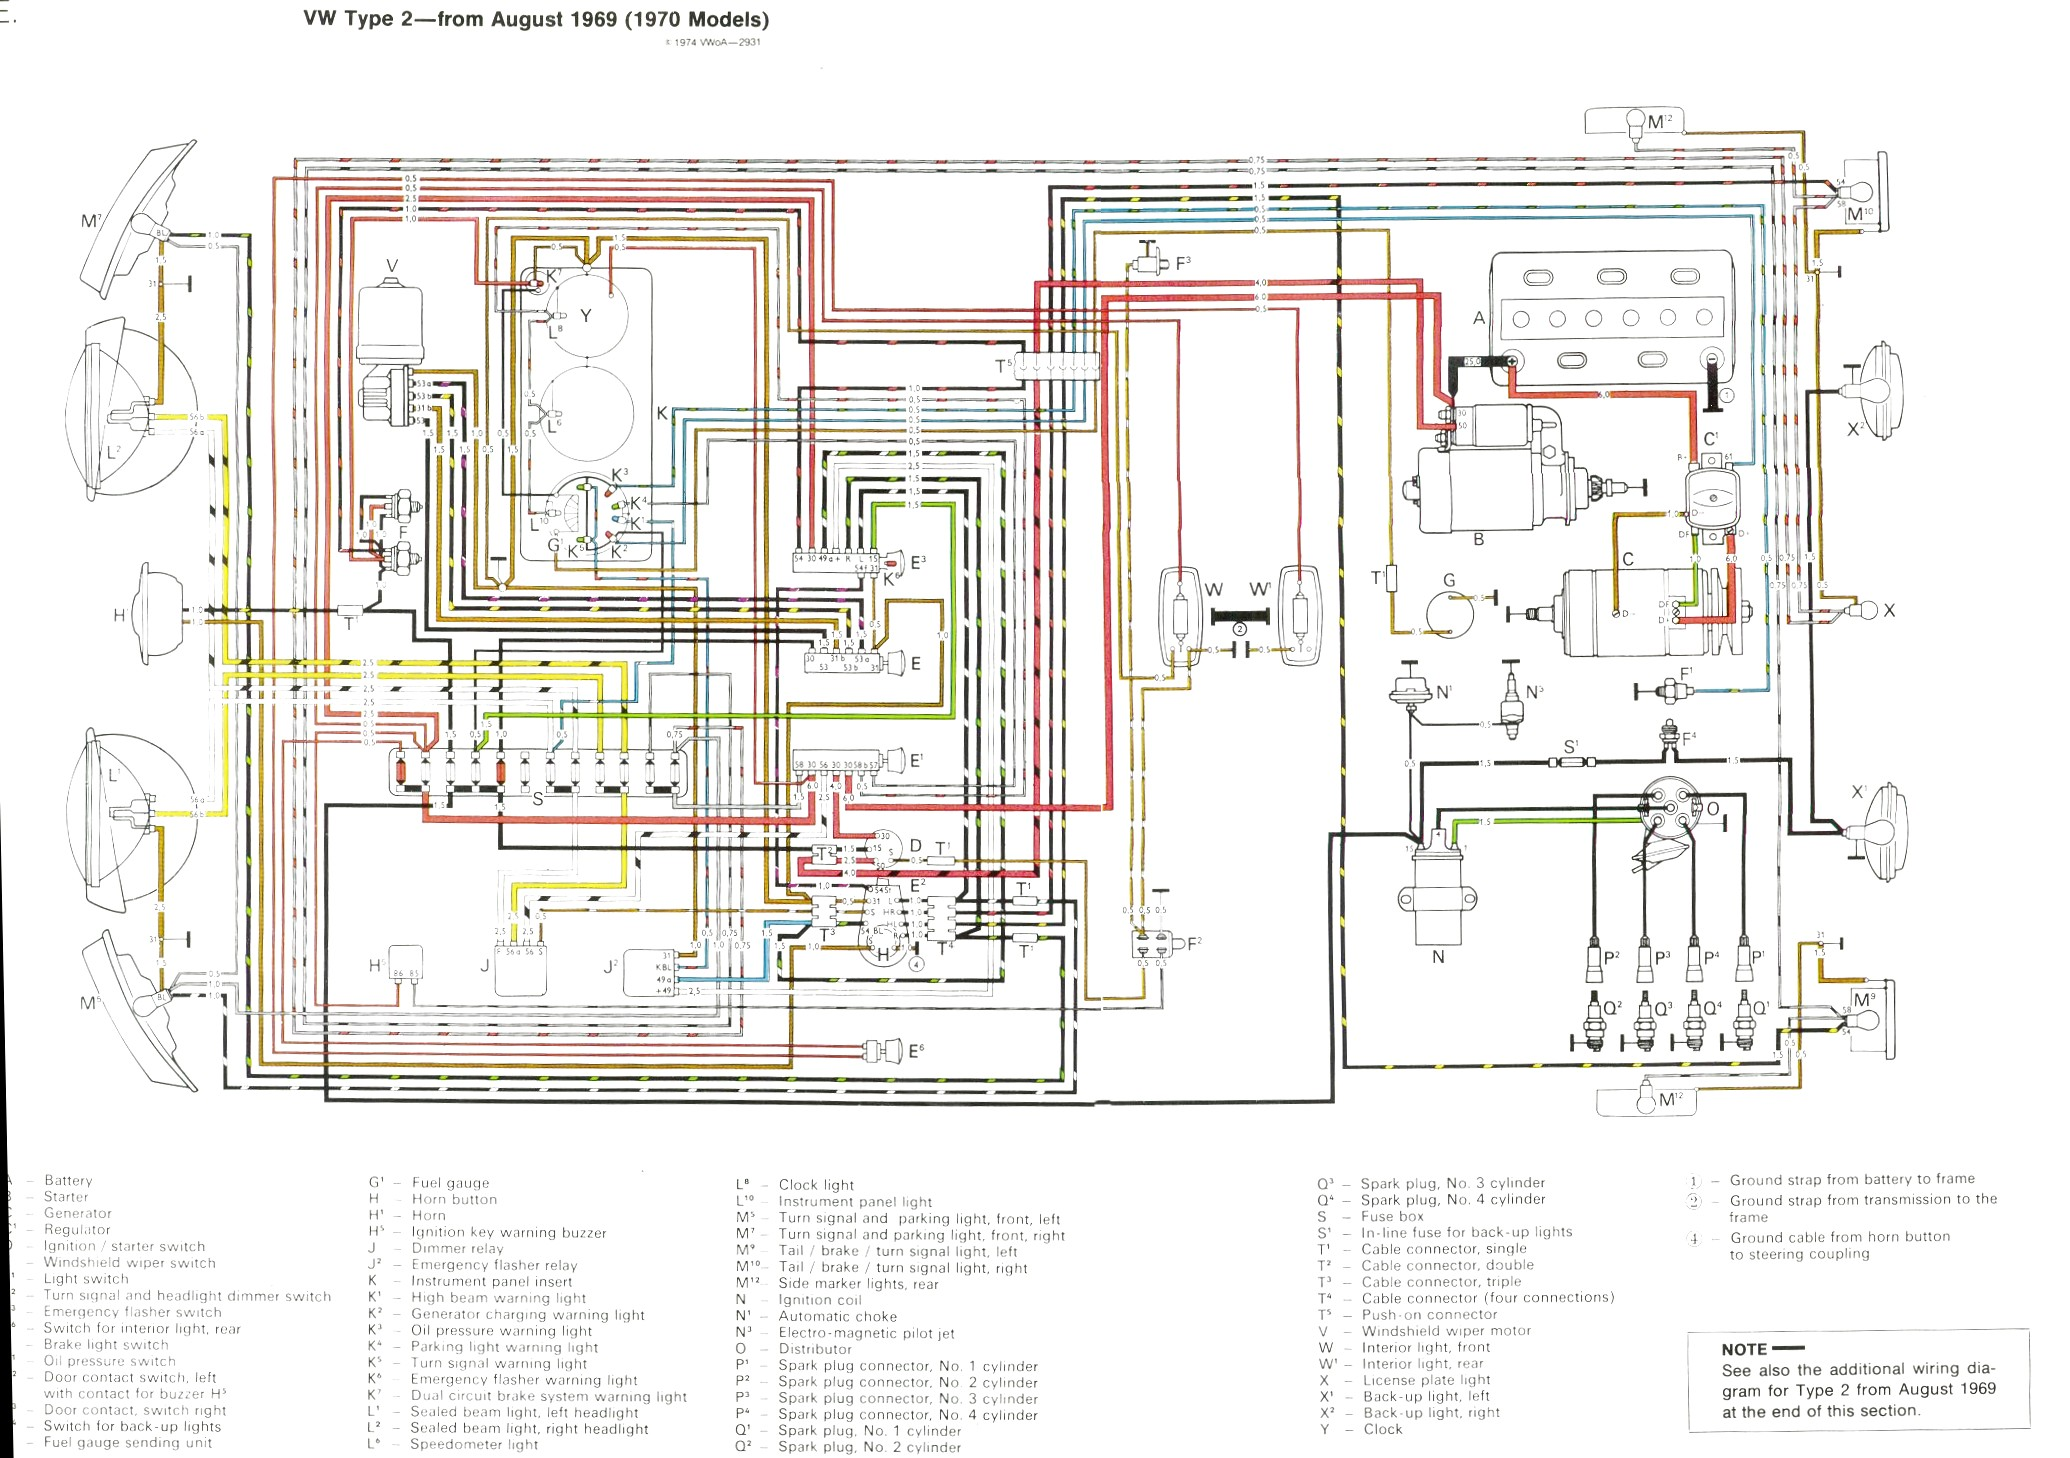 bus 69 70 baywindow fusebox layout bus wiring diagrams at eliteediting.co